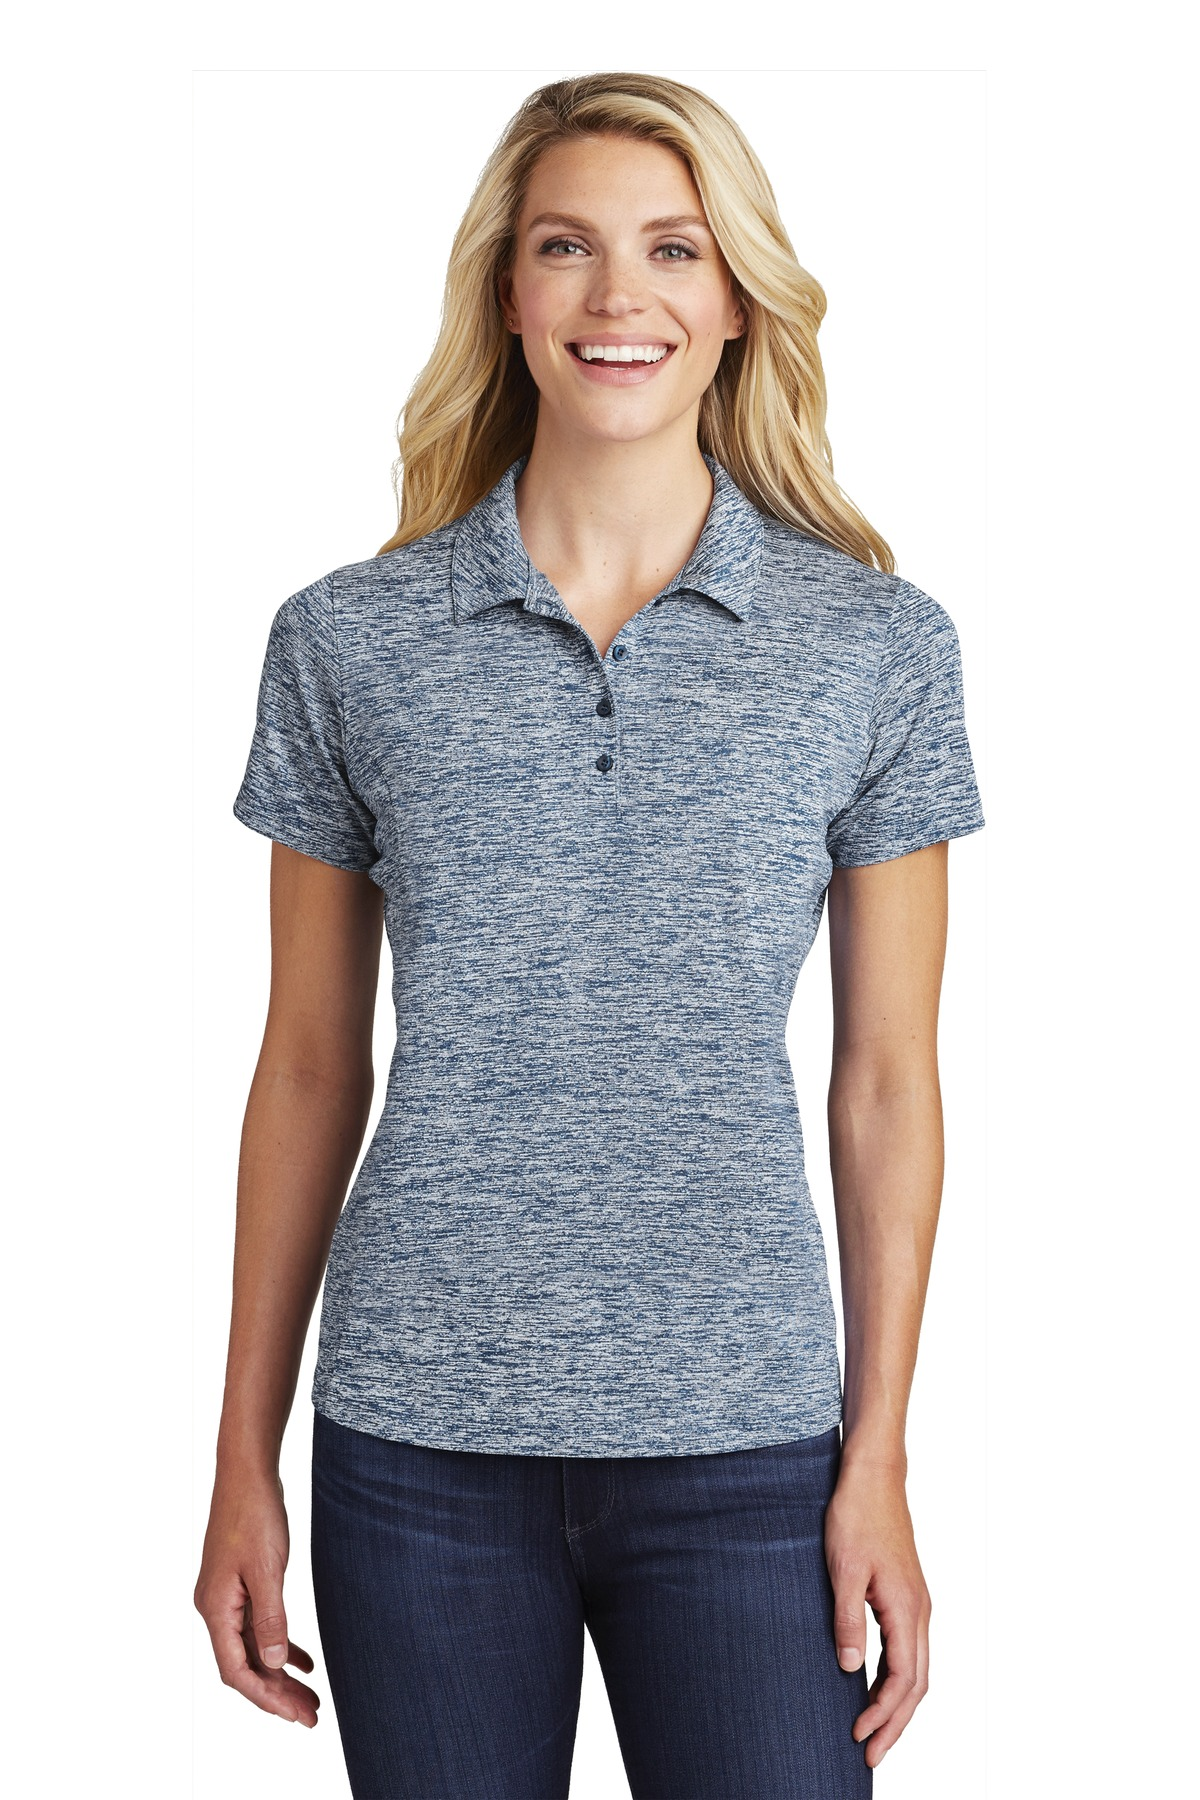 Sport-Tek  ®  Ladies PosiCharge  ®  Electric Heather Polo. LST590 - True Navy Electric